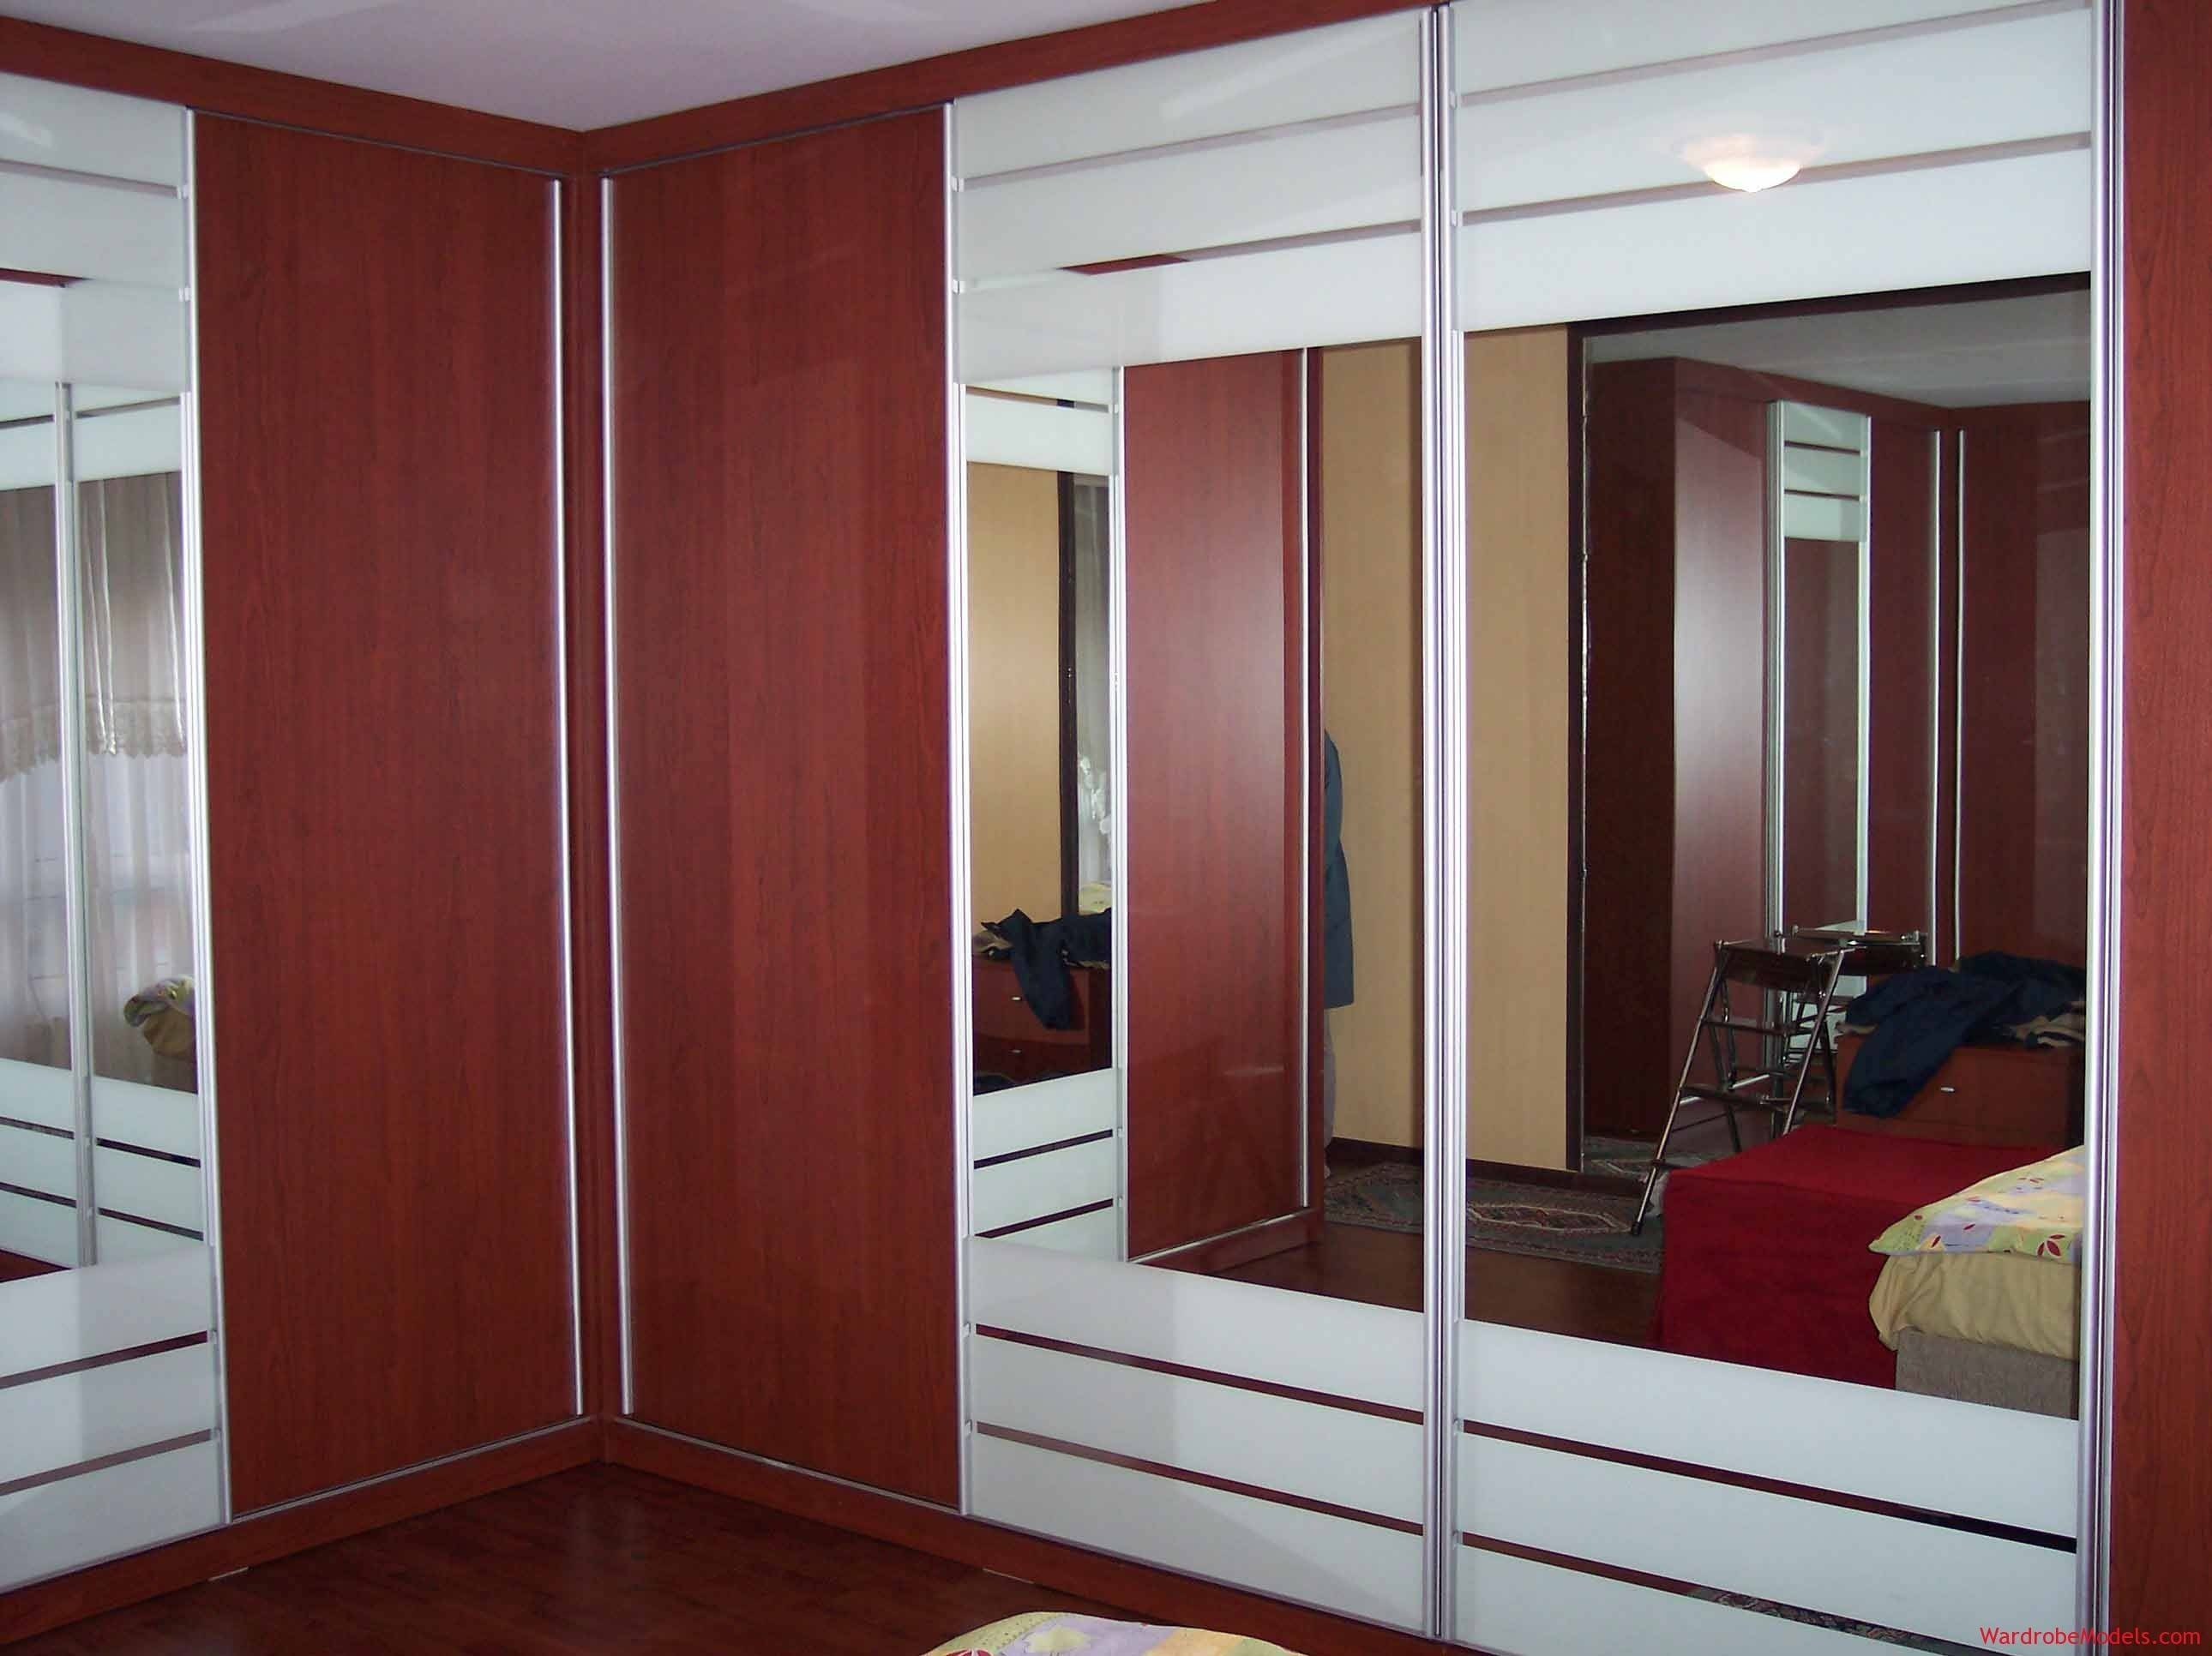 Bedroom : New Intimating Modern Closet Style Tool Escorted pertaining to Dark Wood Wardrobe Sliding Doors (Image 6 of 30)